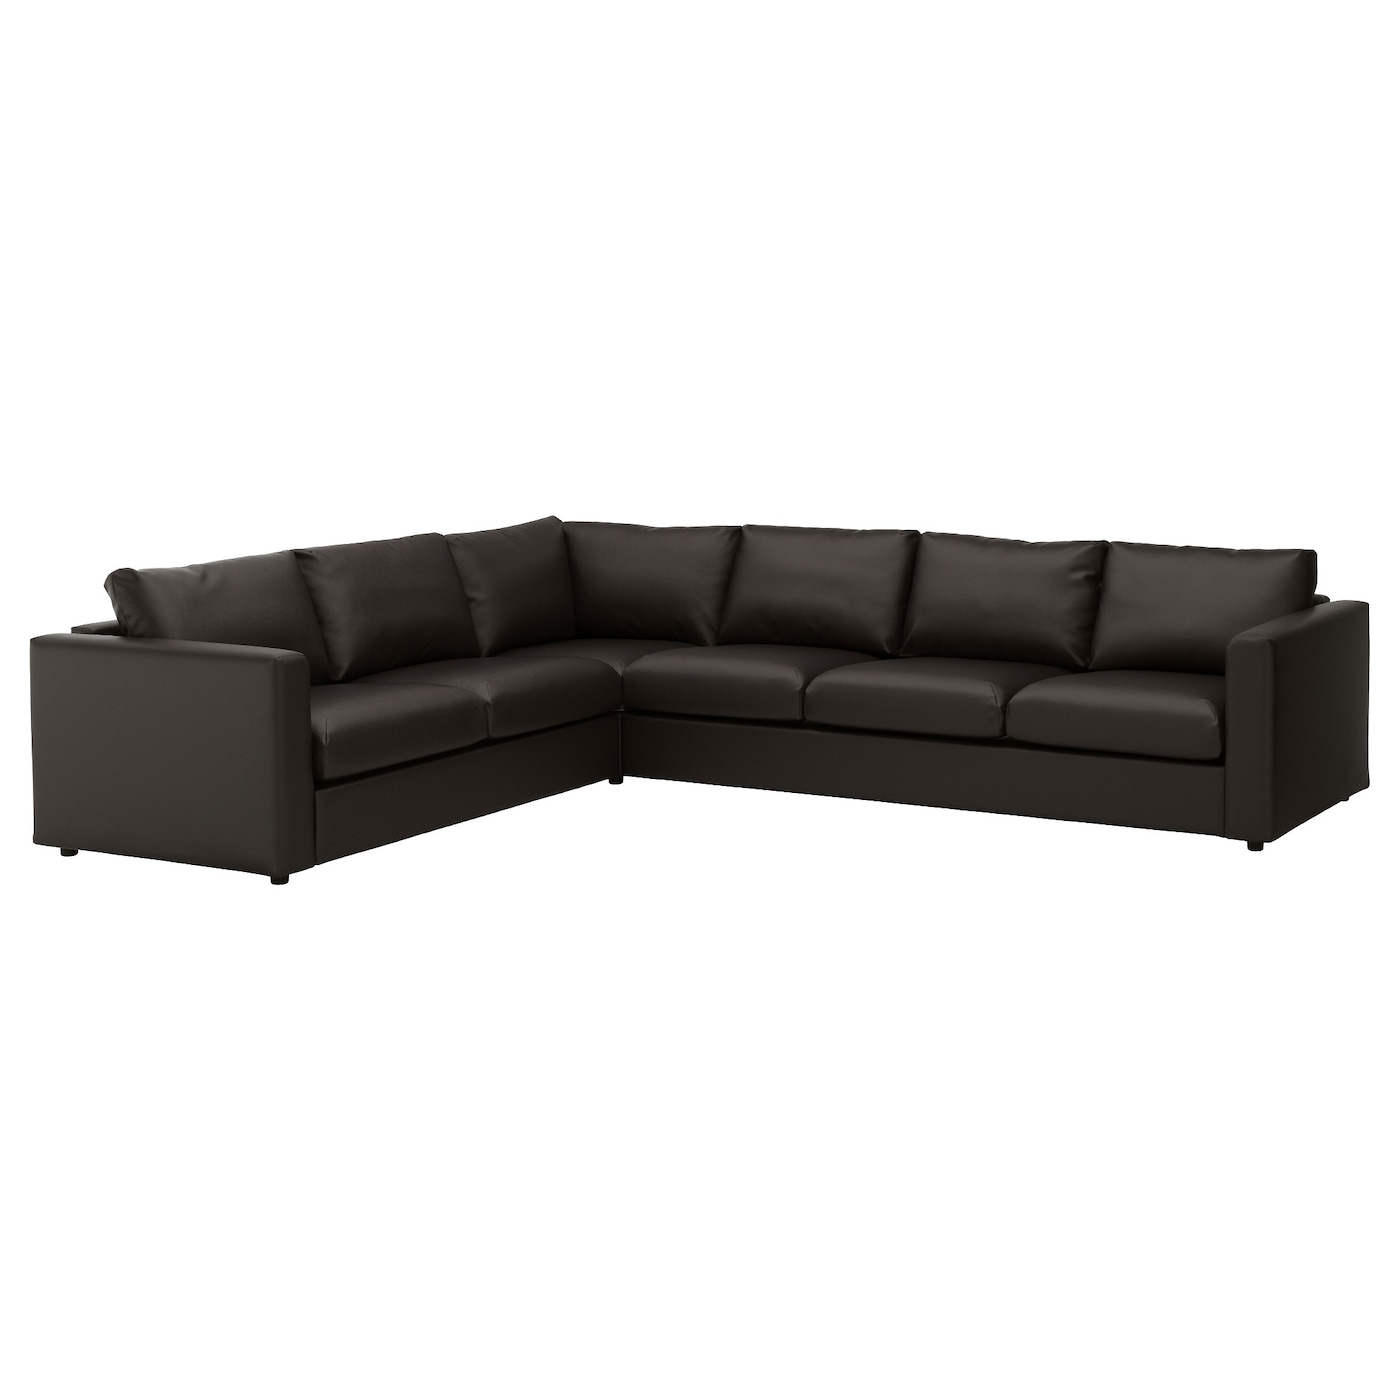 Ecksofa grau schwarz  Free try out of Paola Lenti SO 05 Sofa from Paola Lenti in 3D, VR ...